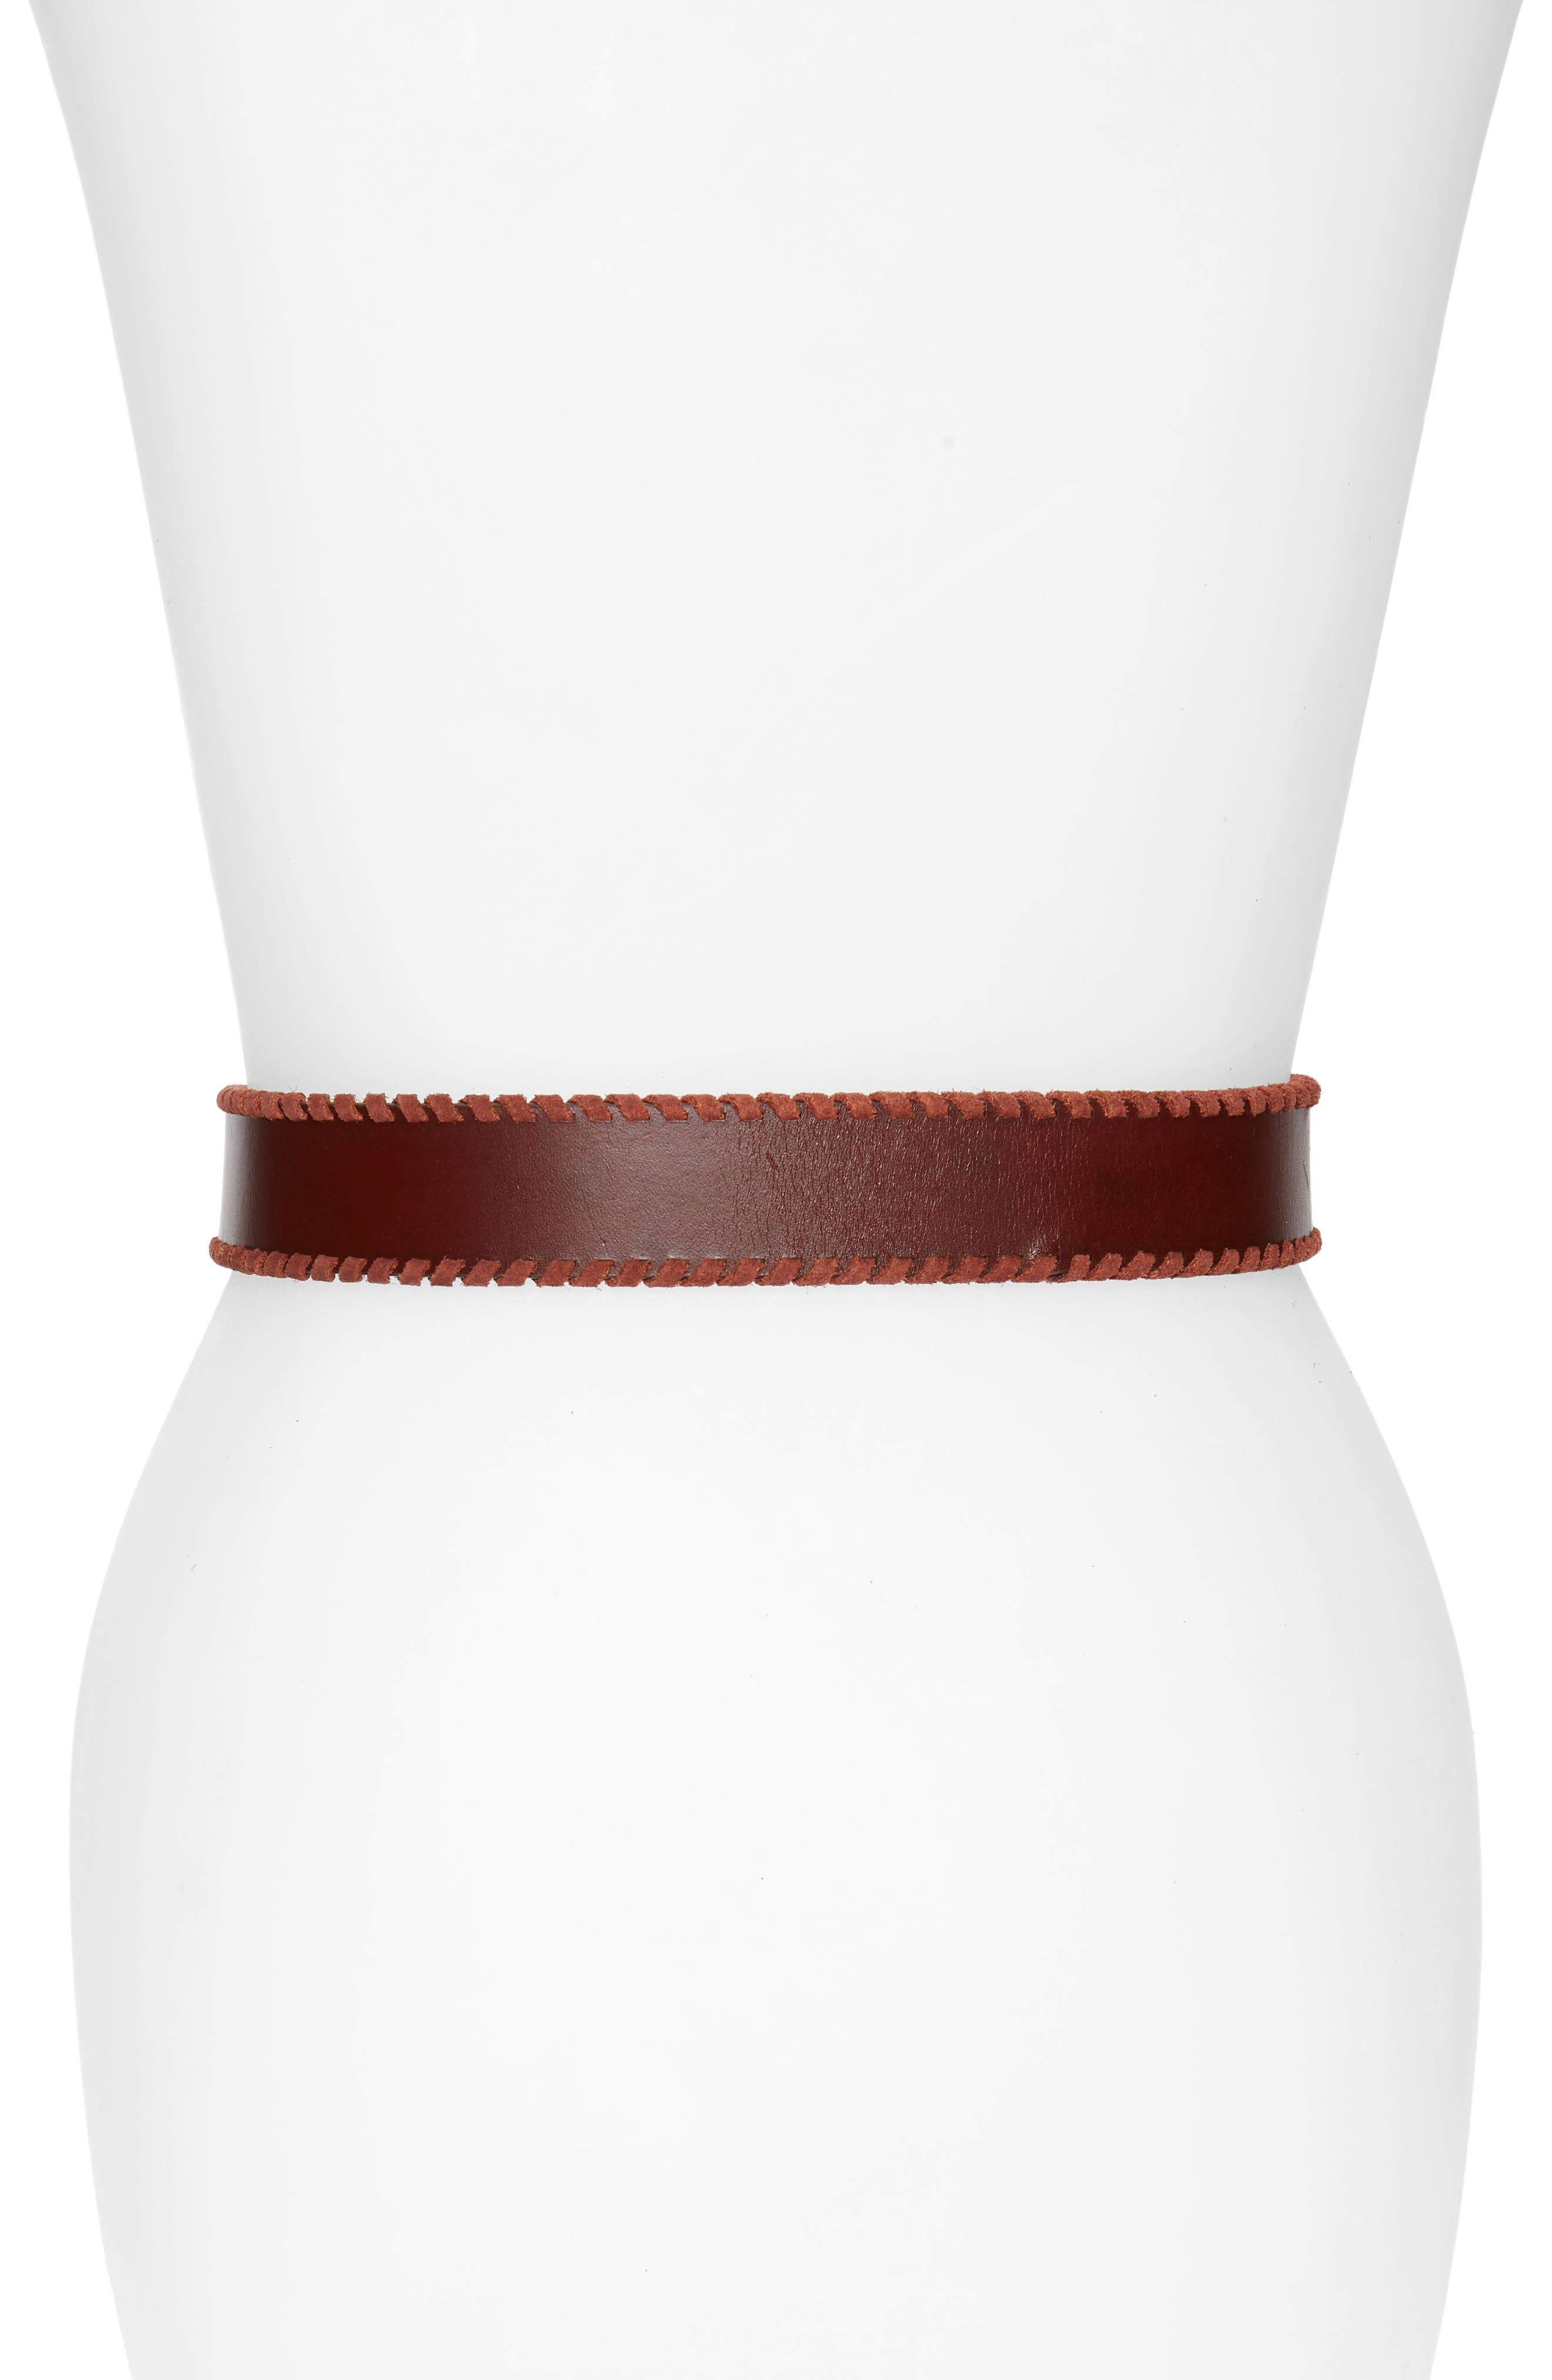 Layla Whipstitch Leather Belt,                             Alternate thumbnail 2, color,                             Luggage / Nickel